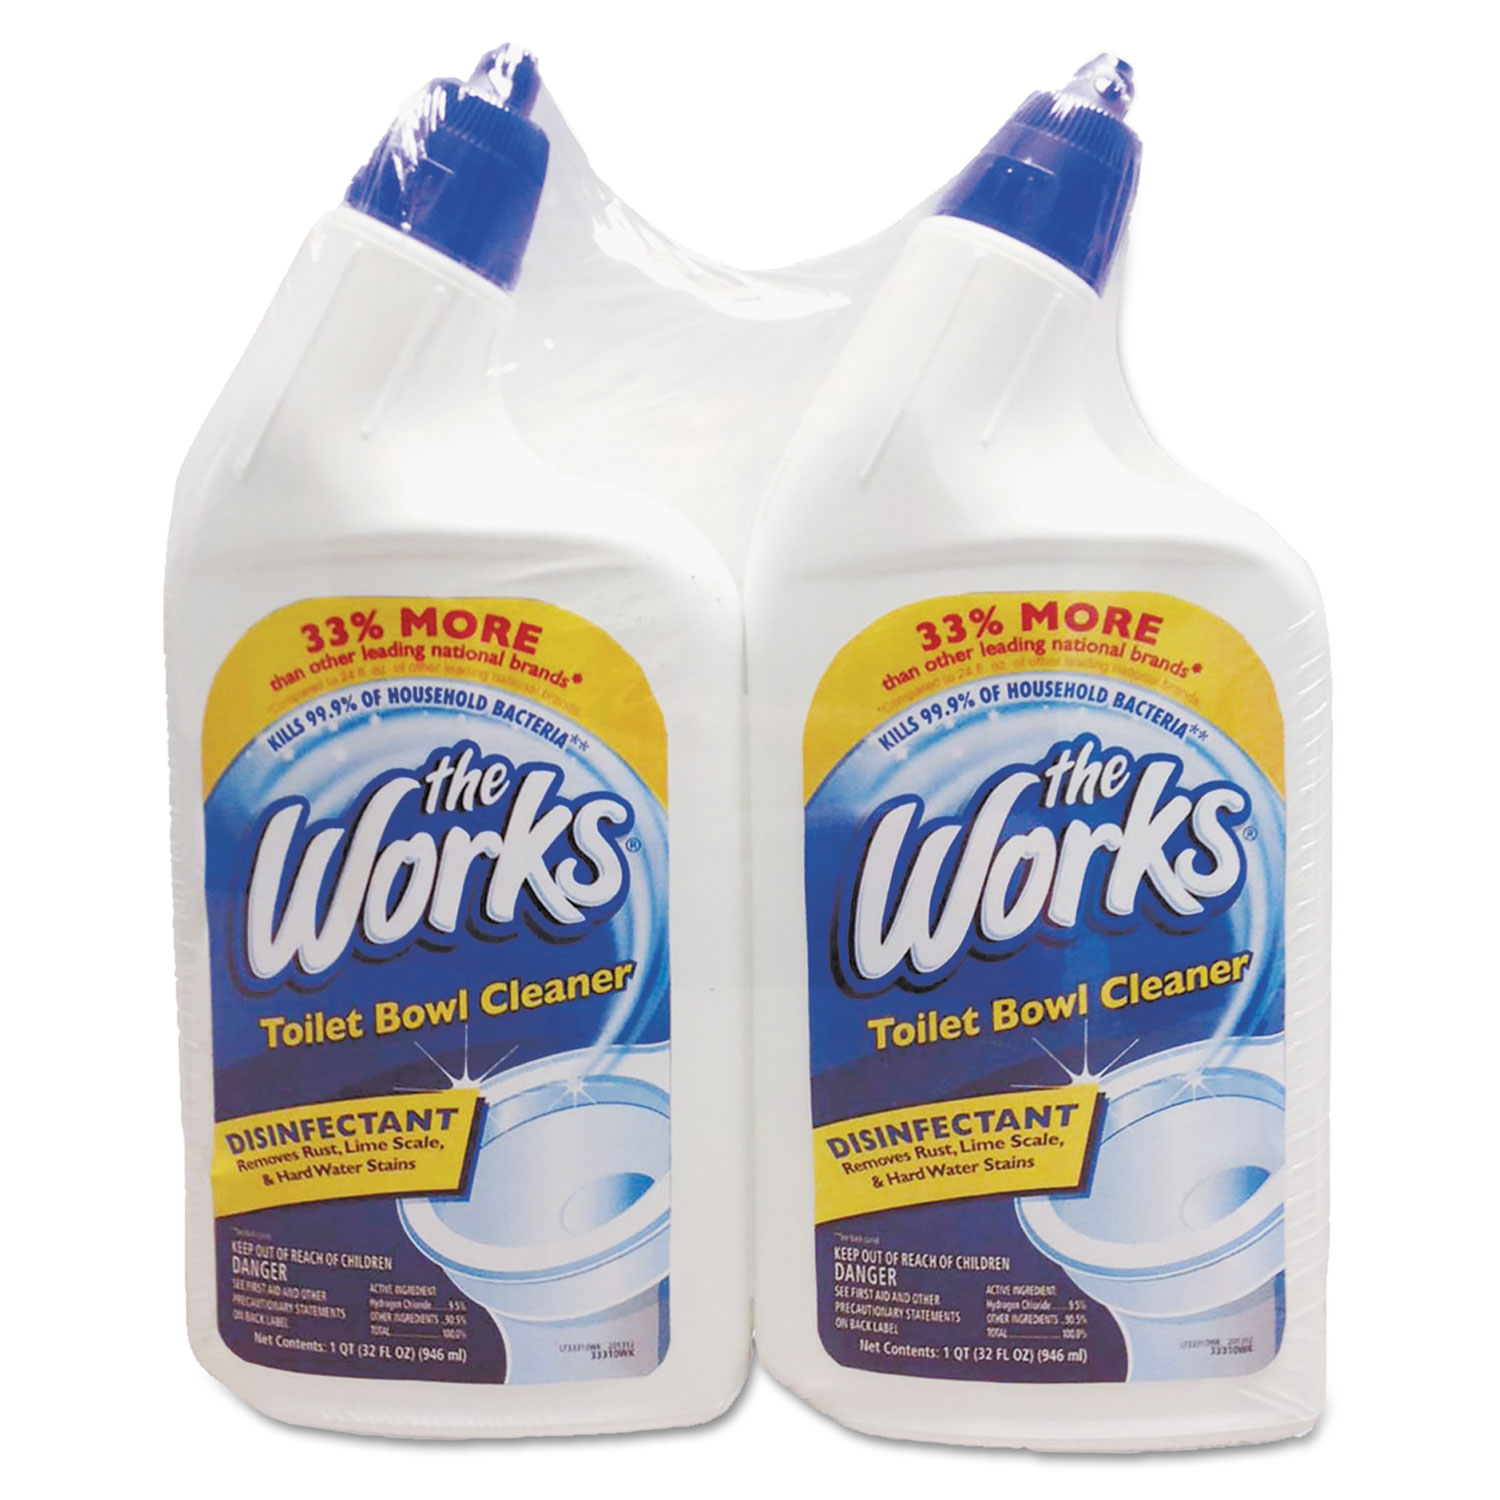 Disinfectant Toilet Bowl Cleaner By The Works 174 Kik33302wk